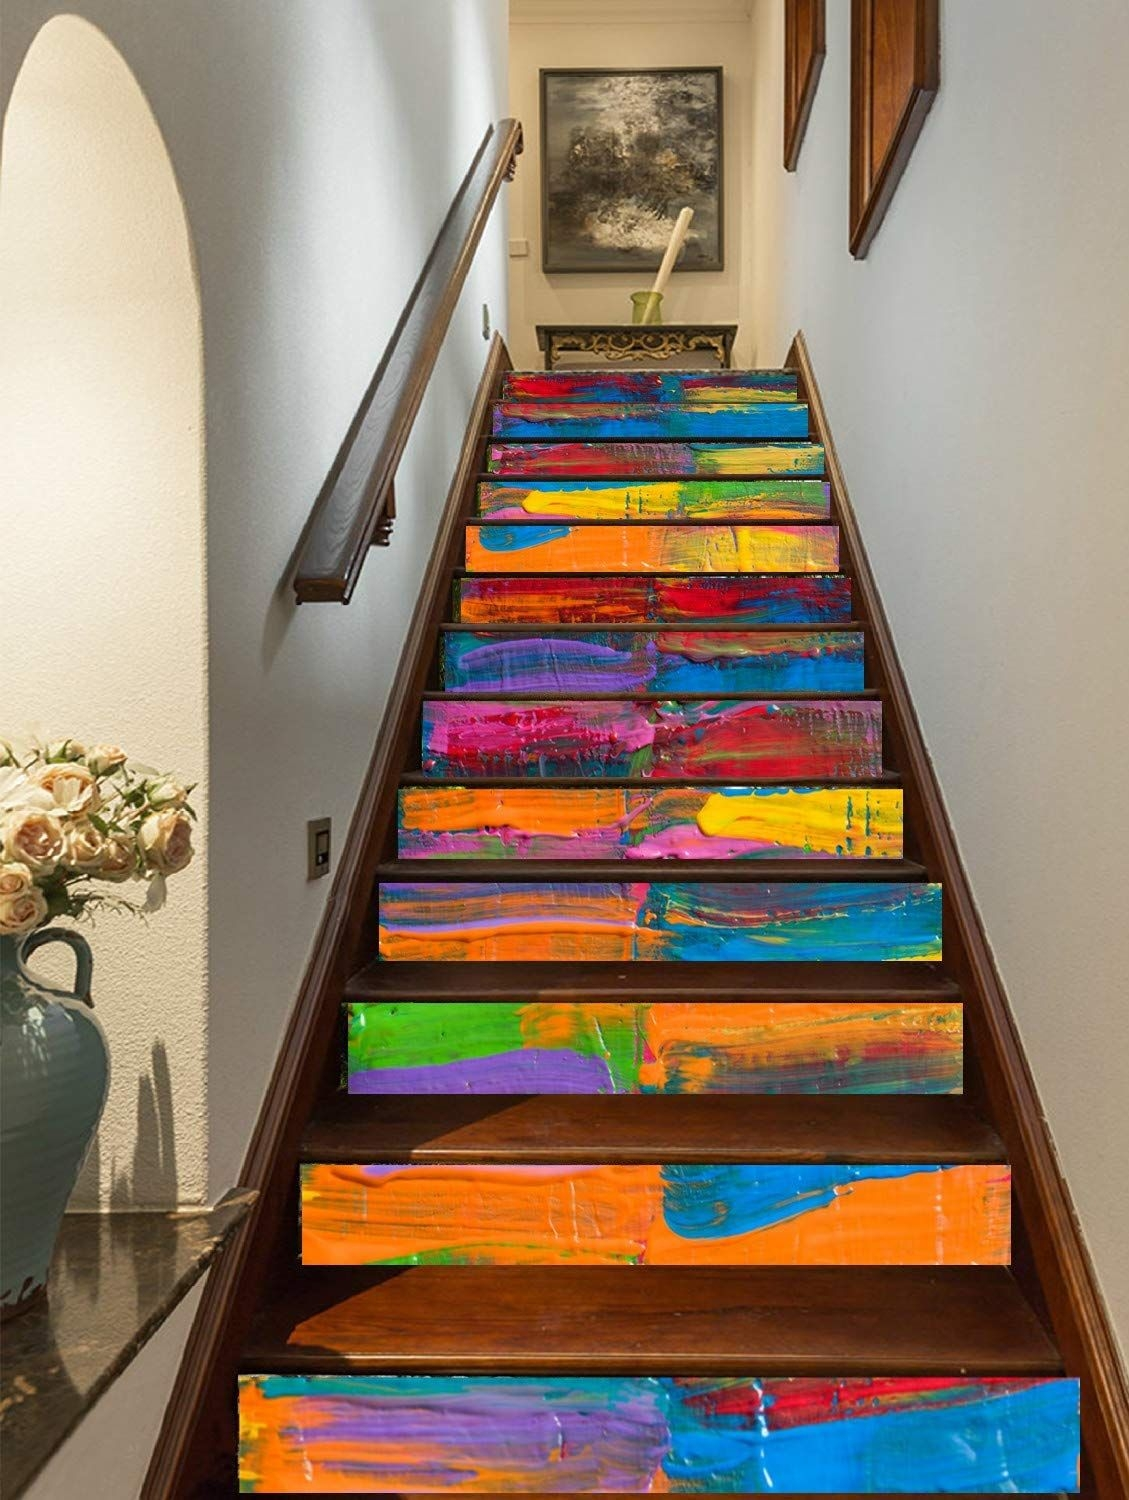 15 Of The Best Staircase Stickers And Tile Decals On Amazon   Best Wood For Indoor Stairs   Hardwood   Stair Parts   Stair Case   Glass   Red Oak